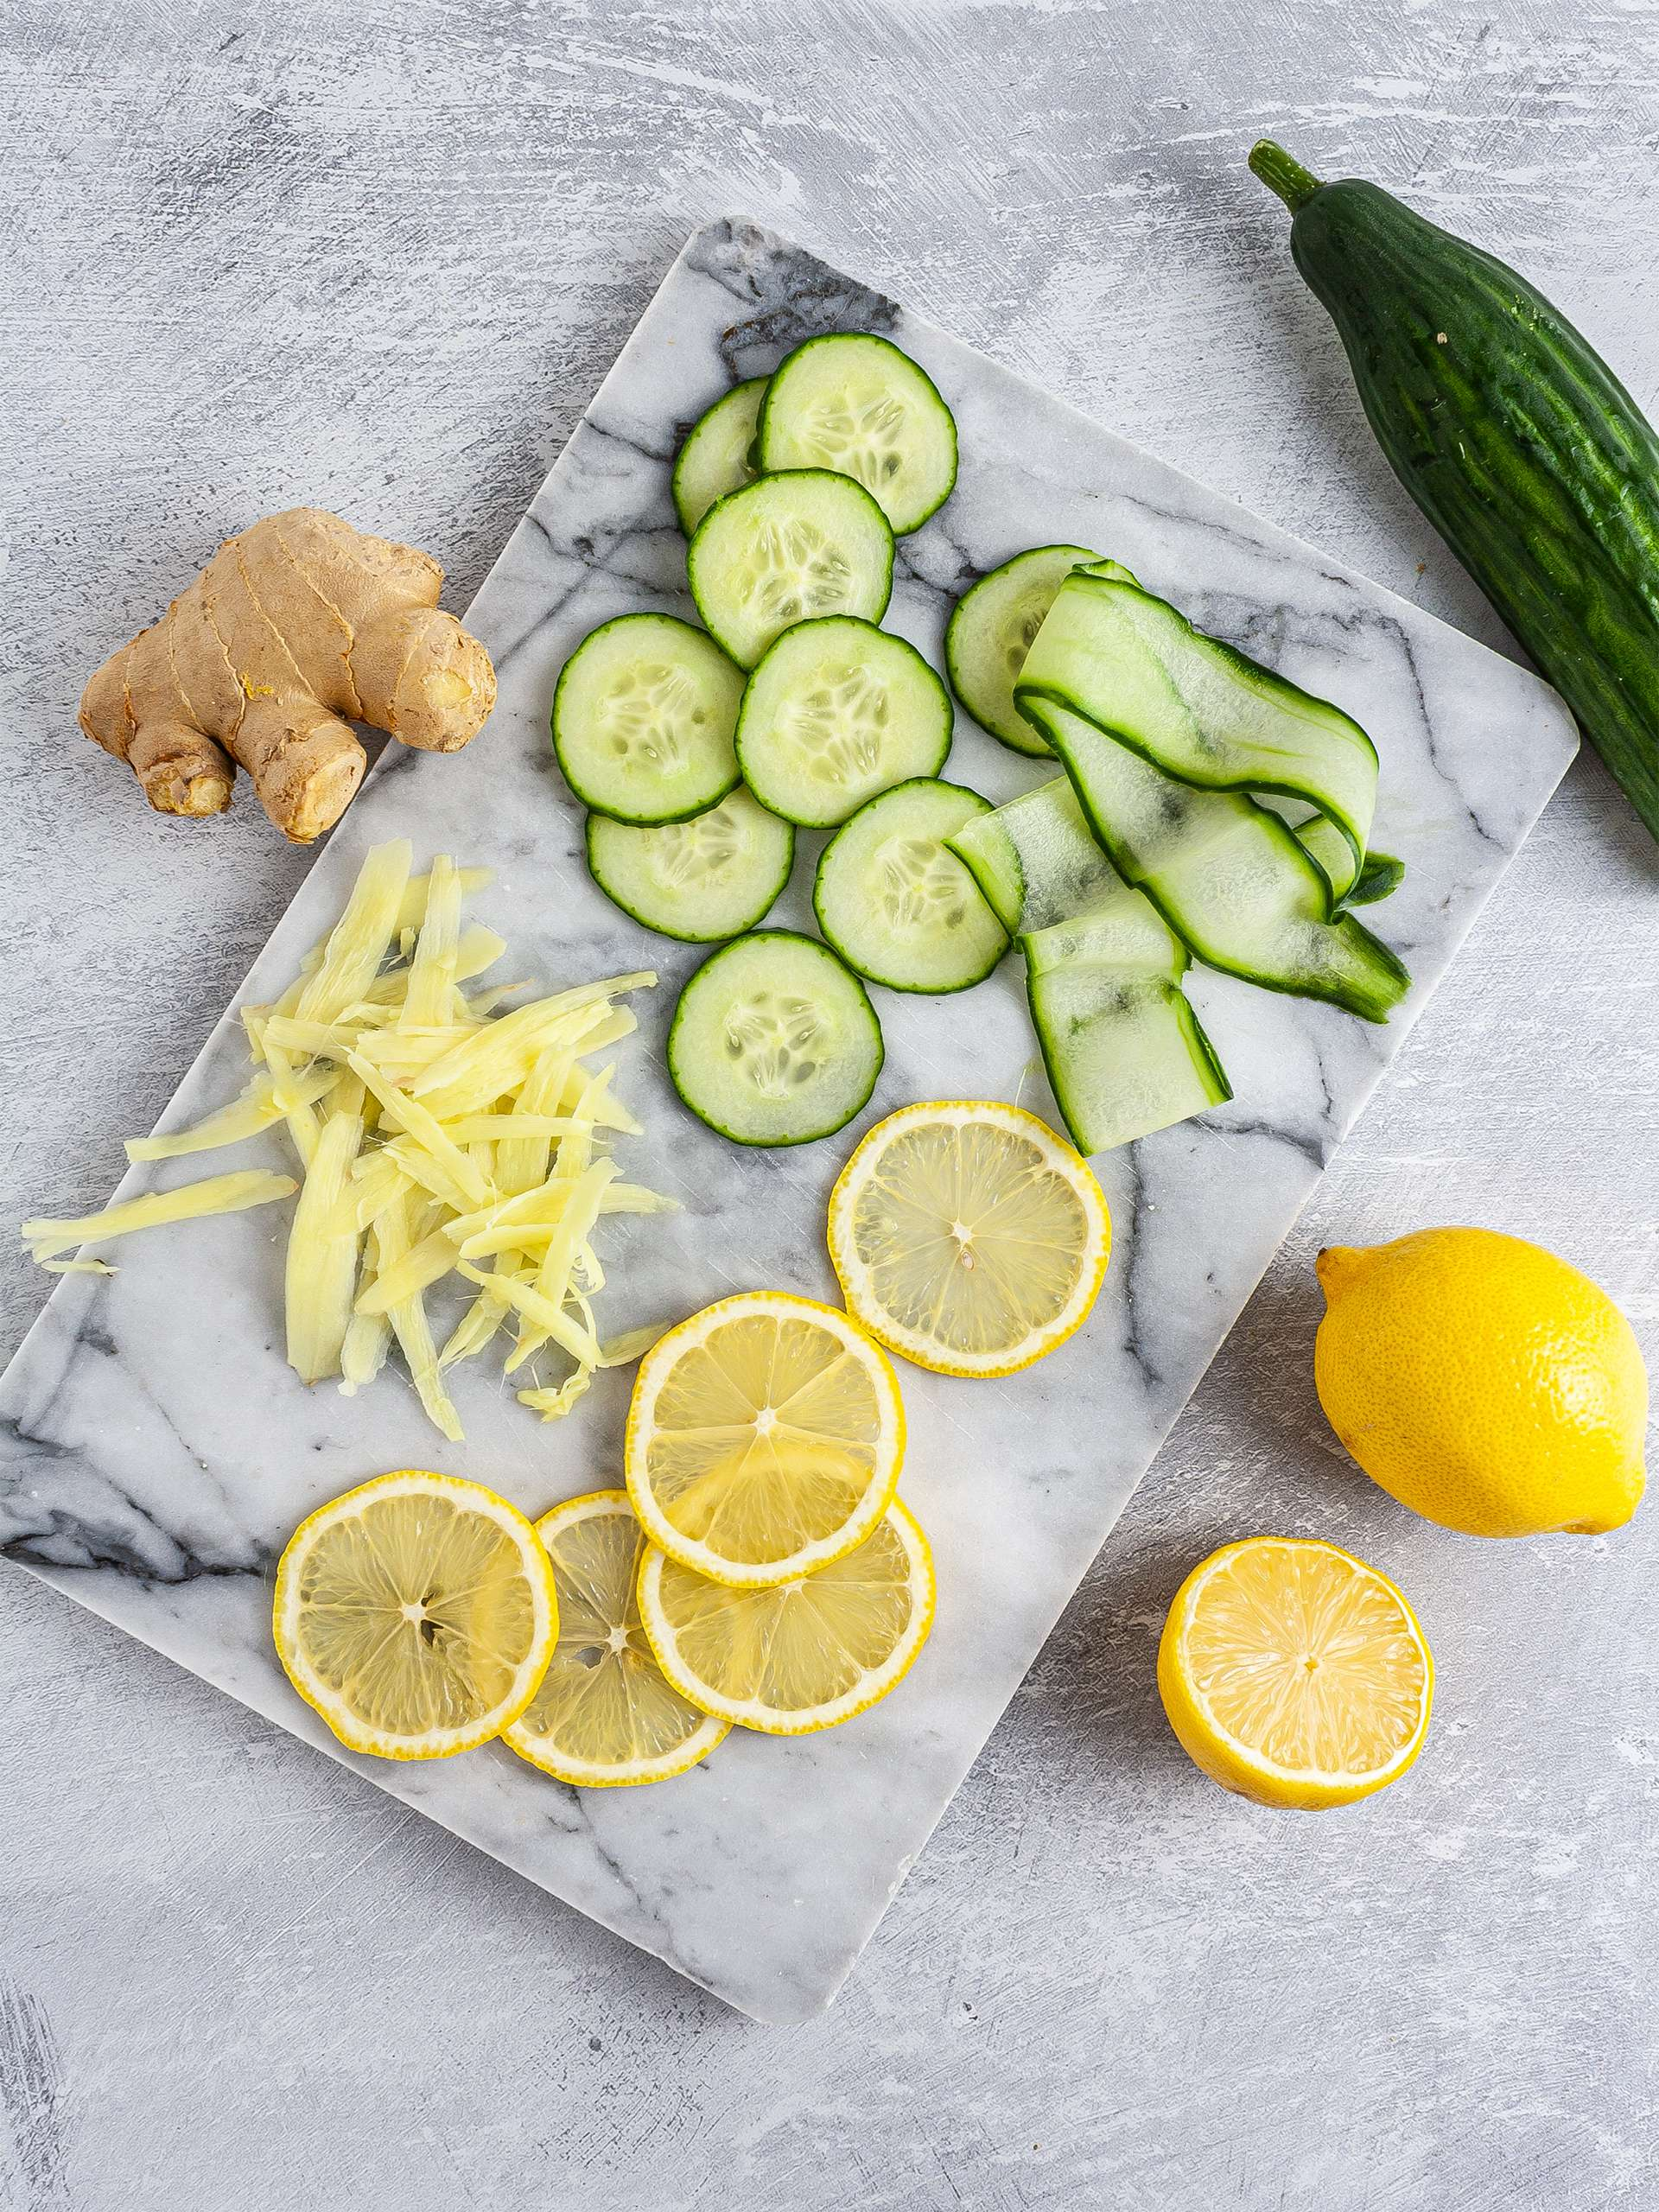 Sliced ginger, lemon, and cucumber